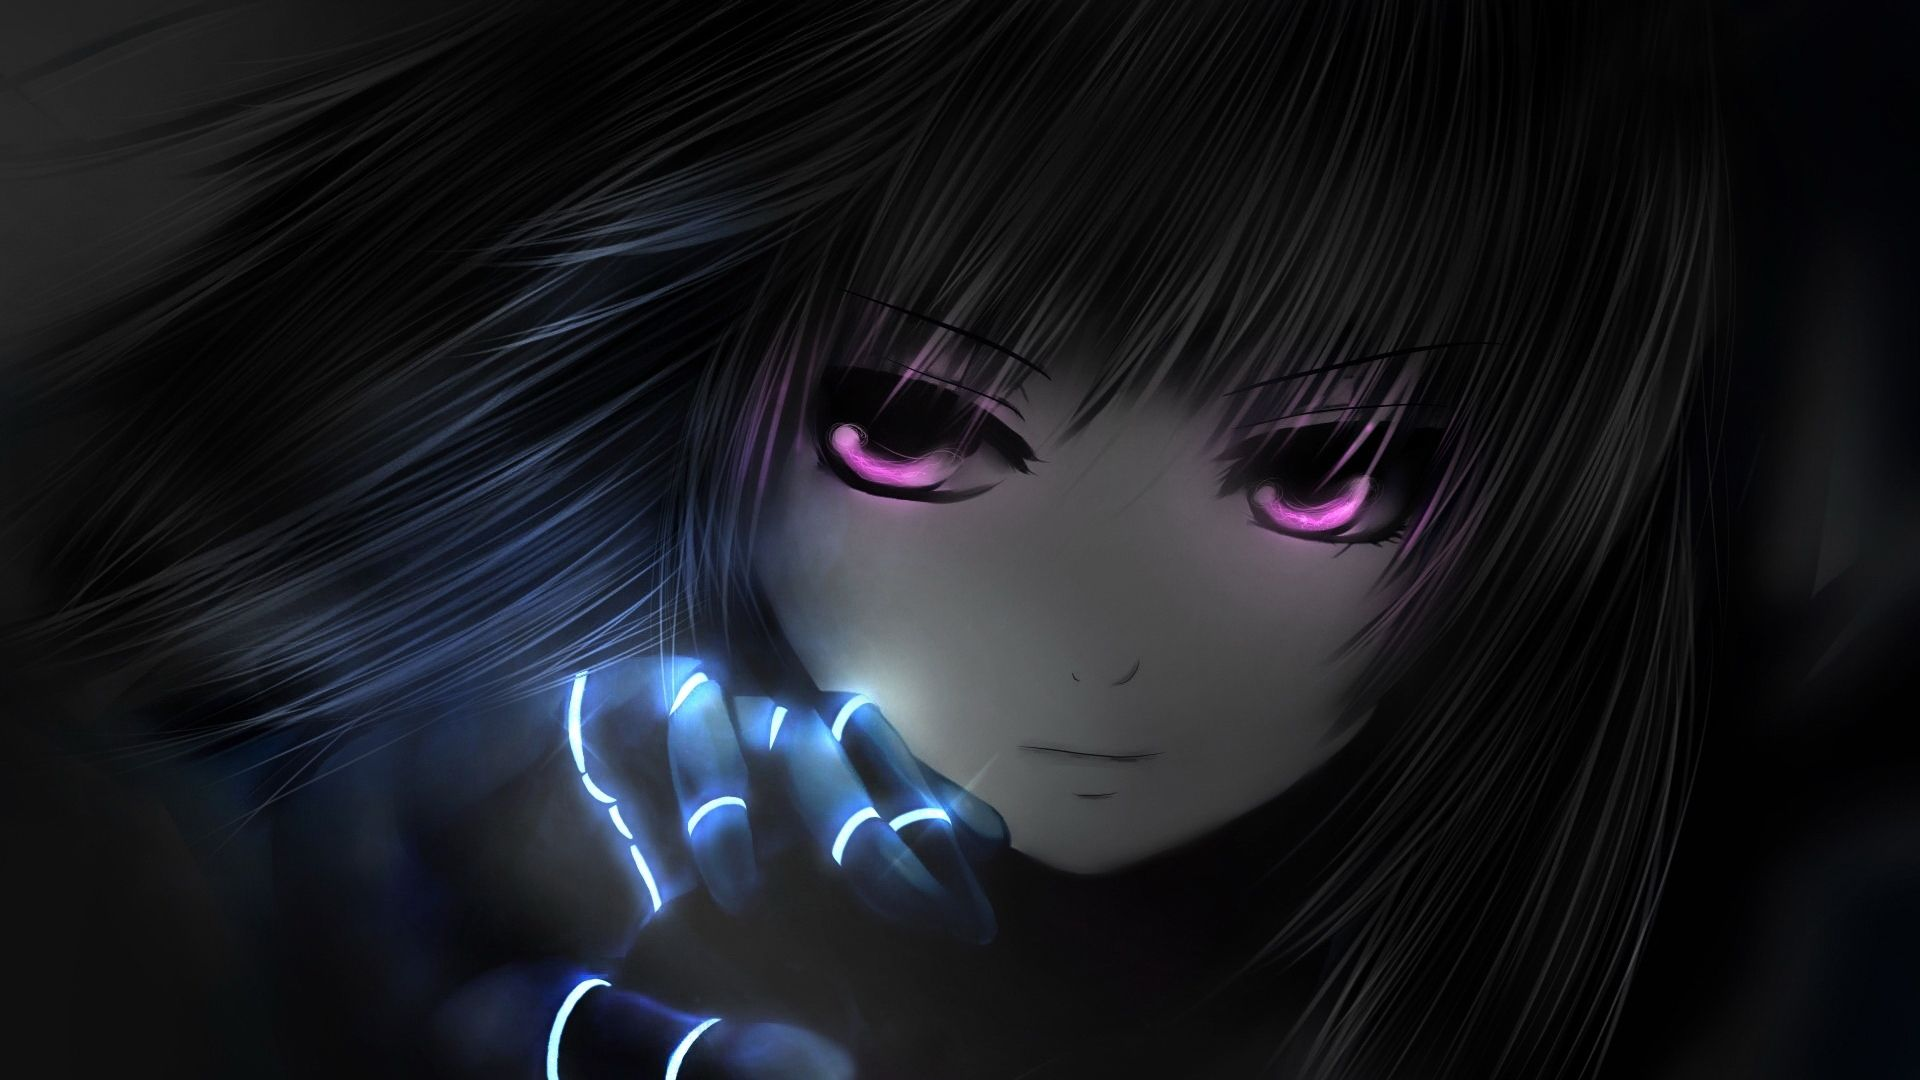 papersonal: Dark Anime Wallpaper Anime/Manga Pinterest Dark anime and Anime